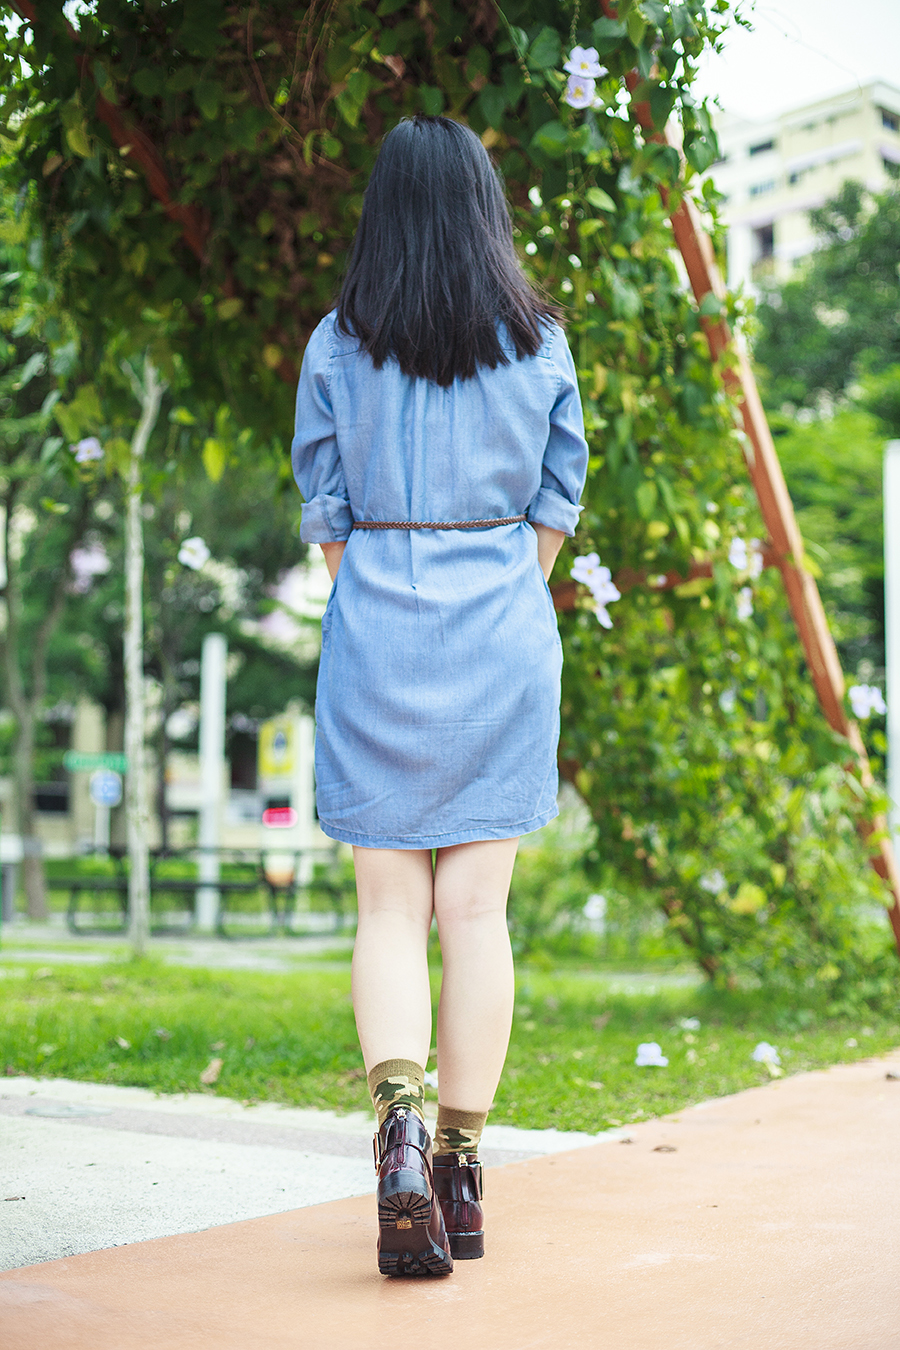 Back view: Uniqlo denim long-sleeved dress, brown braid thin belt, Gap black frame glasses, Stance green camouflage socks, Jeffrey Campbell Flamel cutout booties in wine.